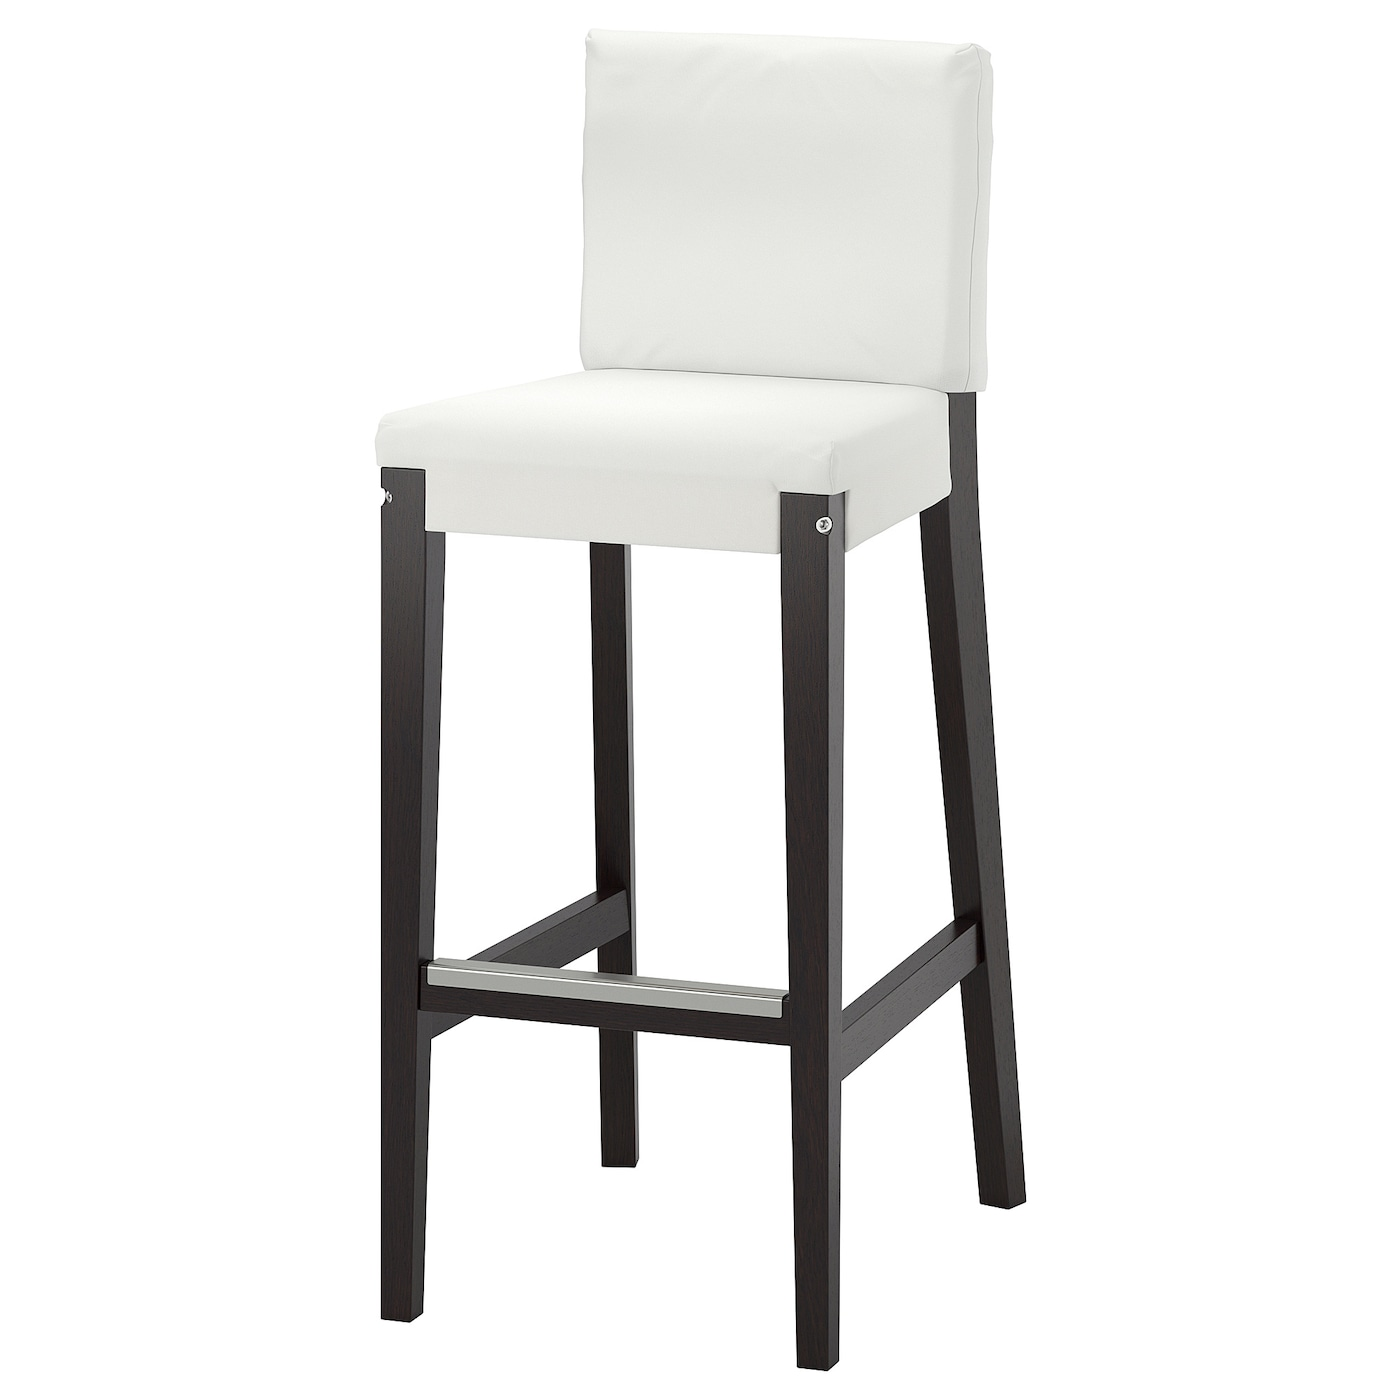 HENRIKSDAL Bar stool with backrest frame - dark brown 8 cm